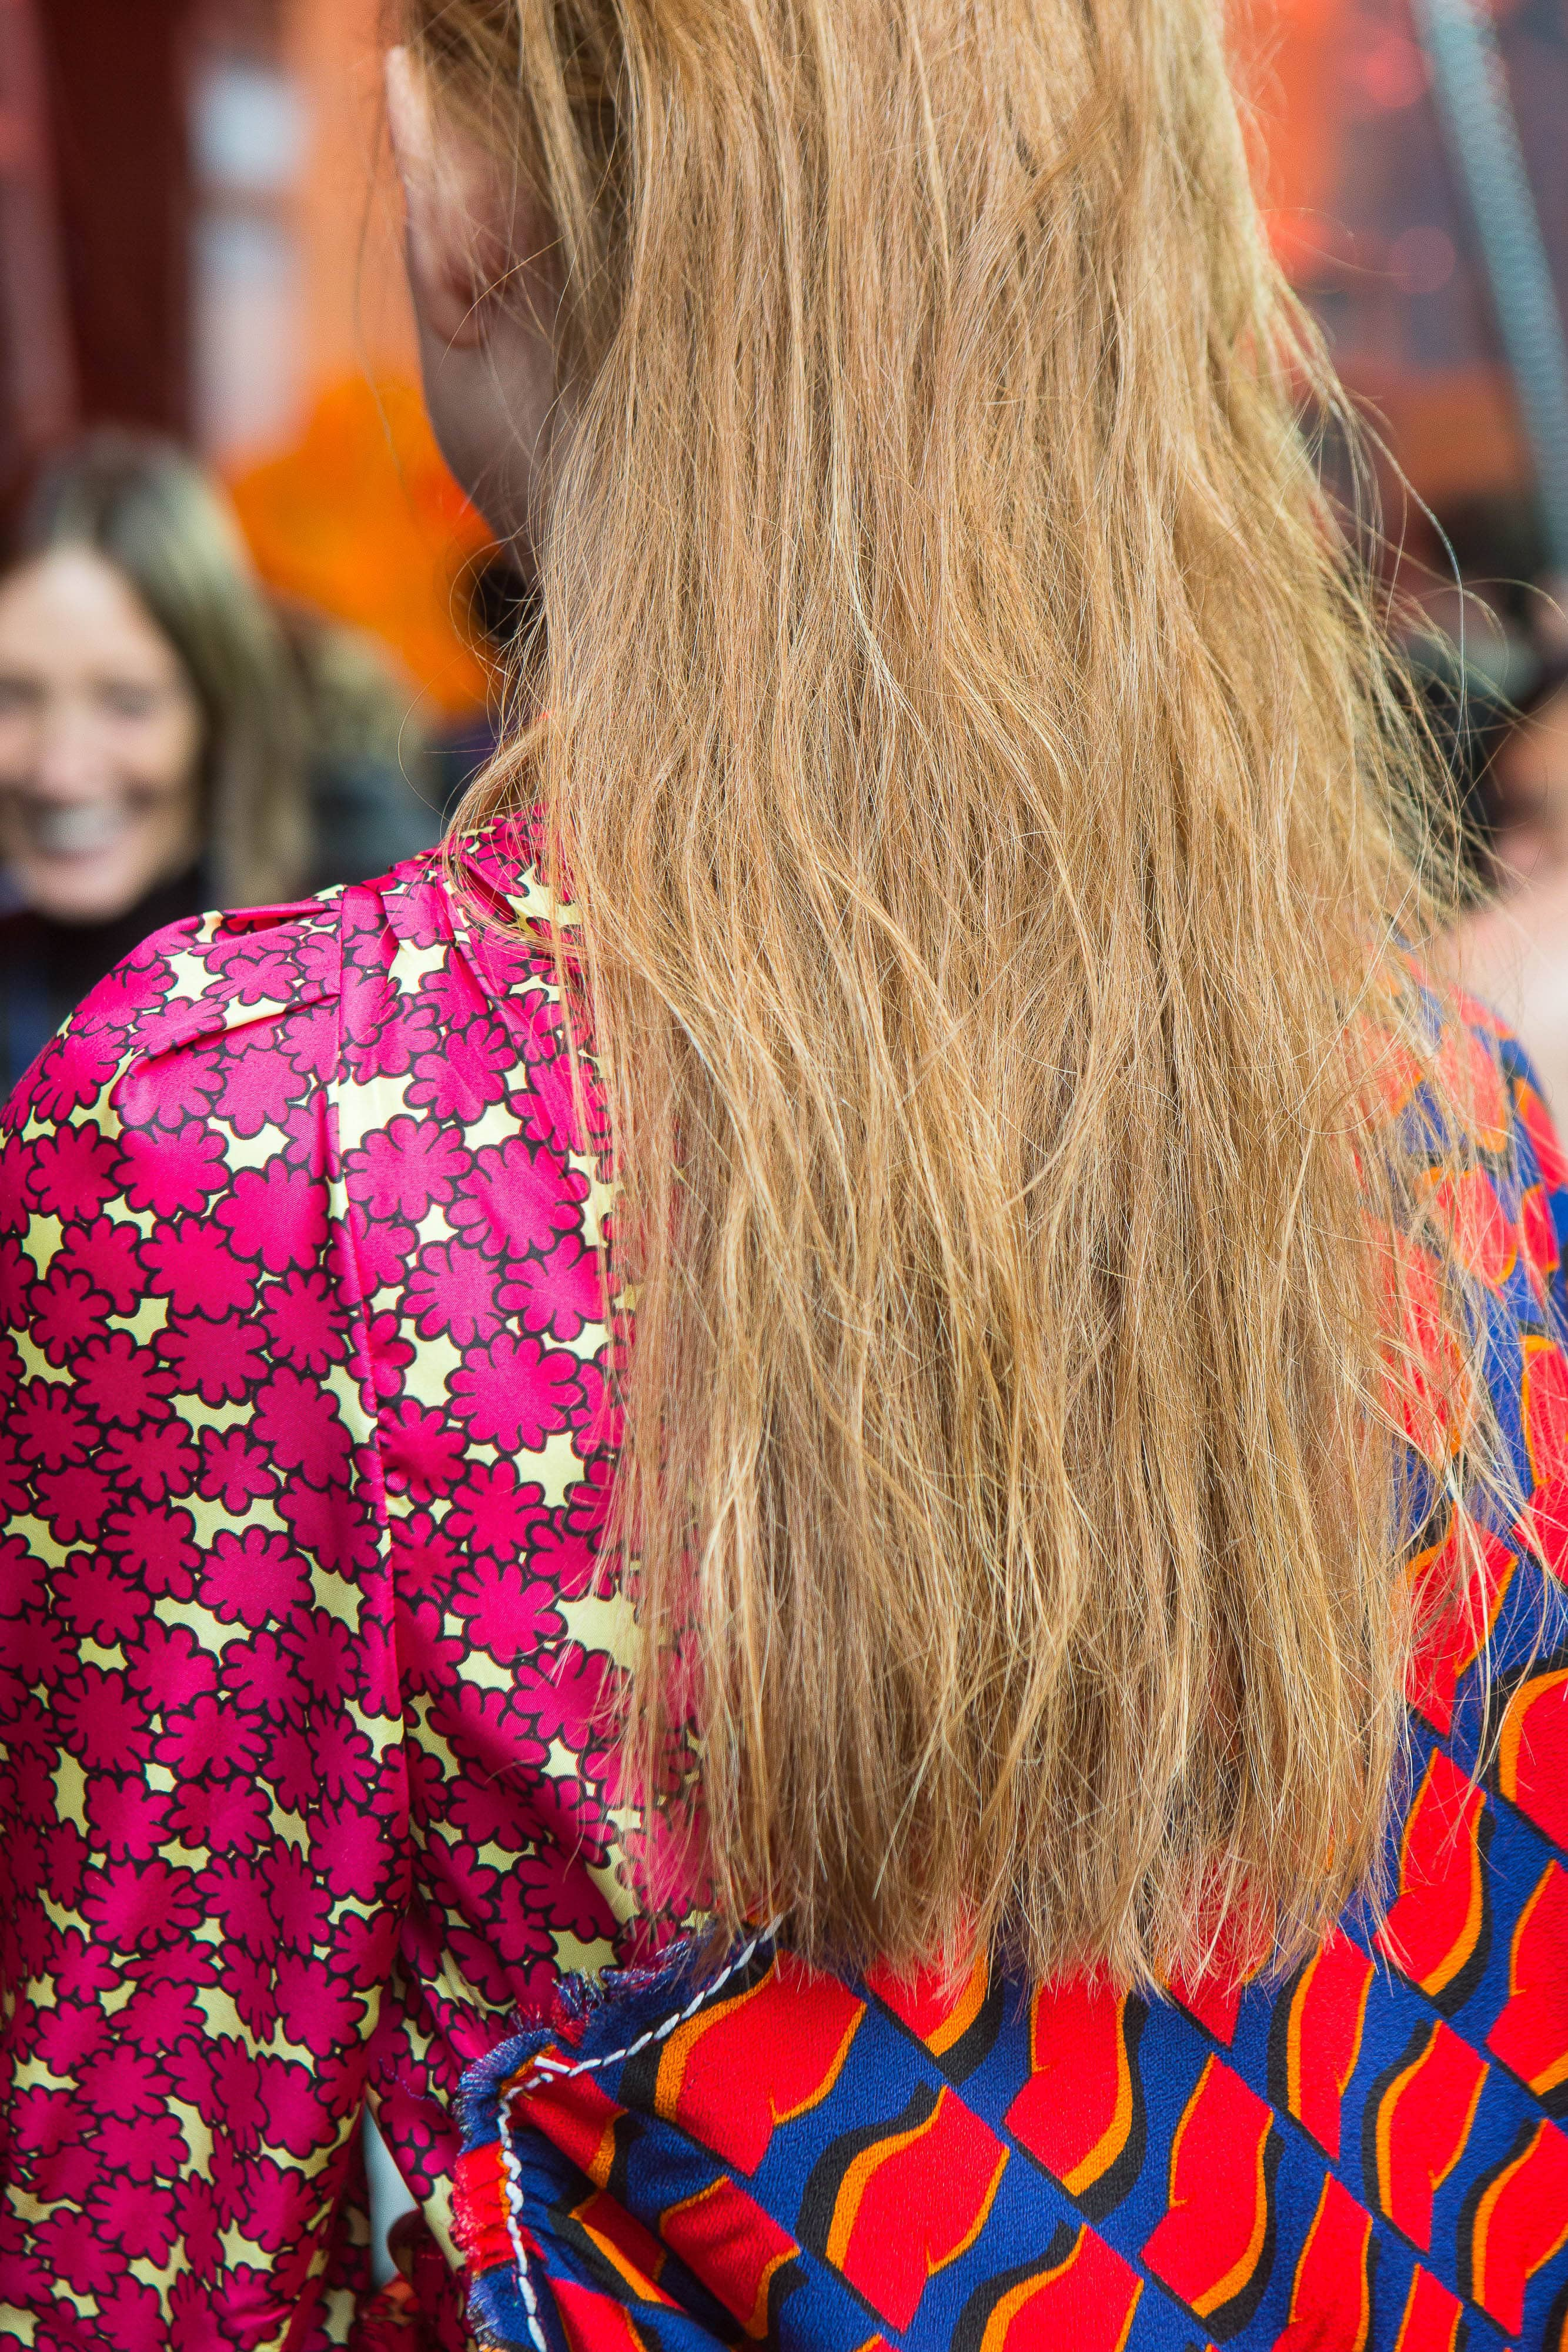 back view of a model with long blonde-brown hair with slight waves, wearing a pink, blue and red patterned outfit